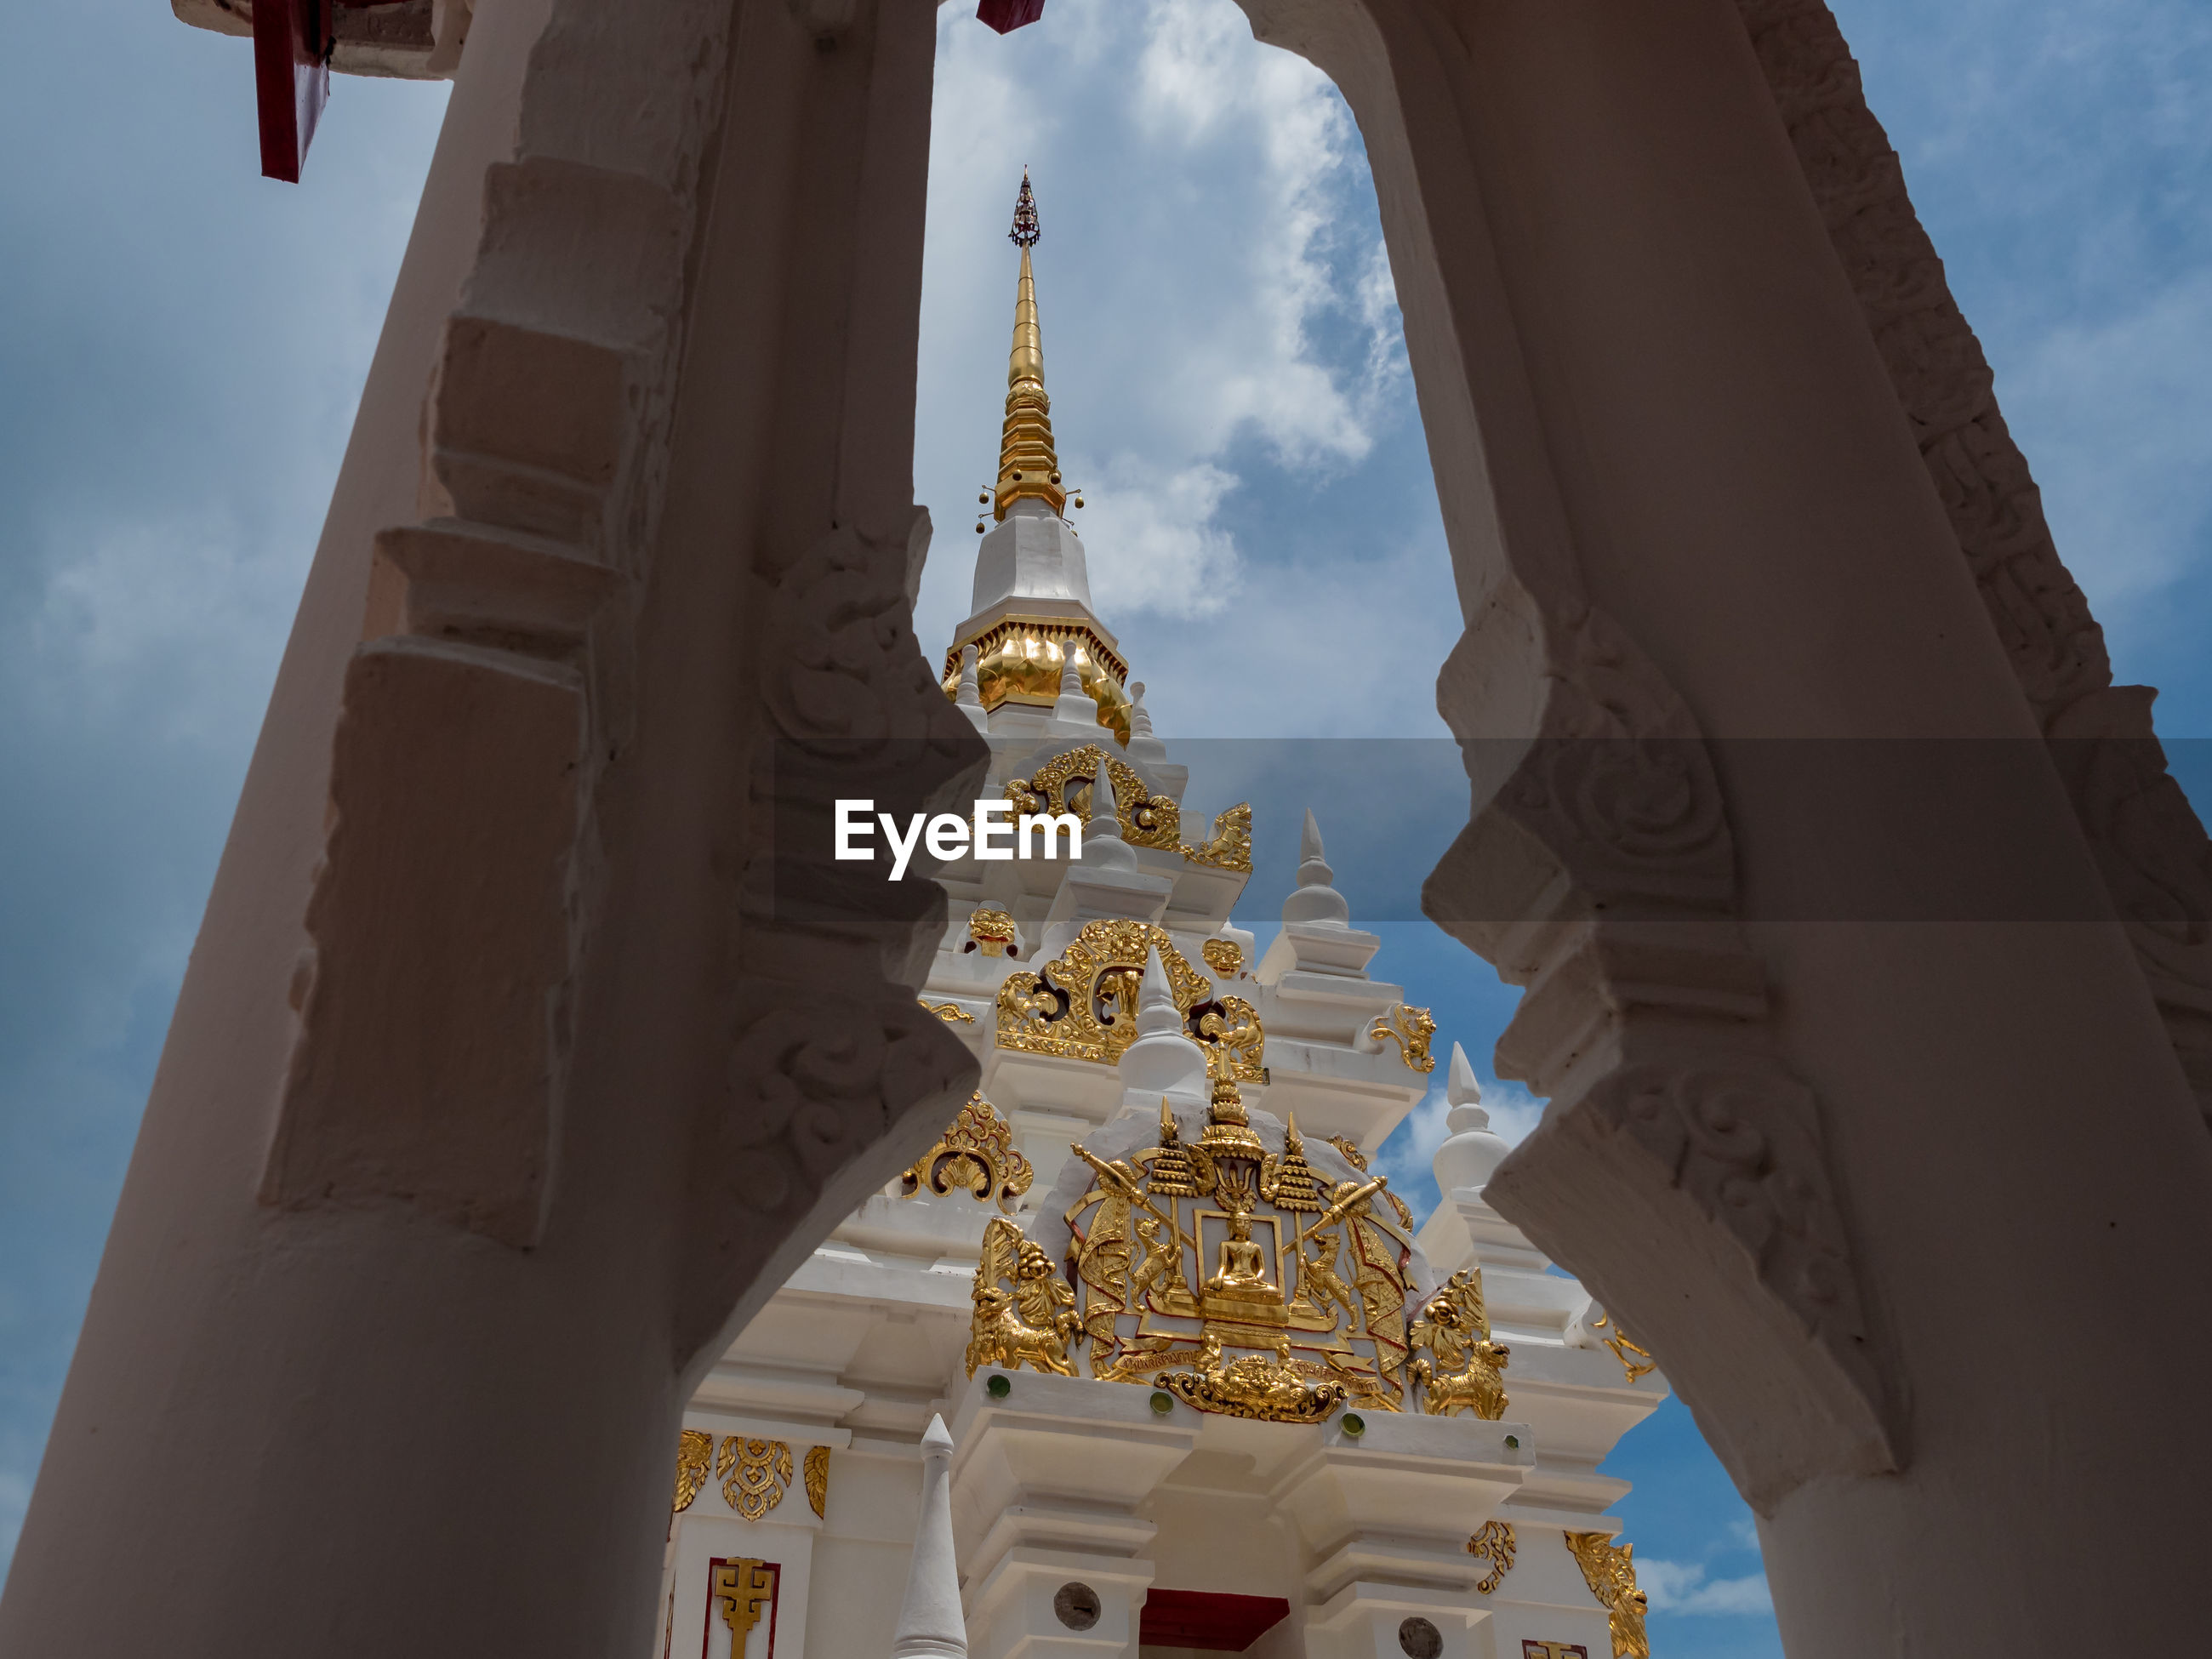 Thai traditional style white pagoda inside the temple with blue sky background.